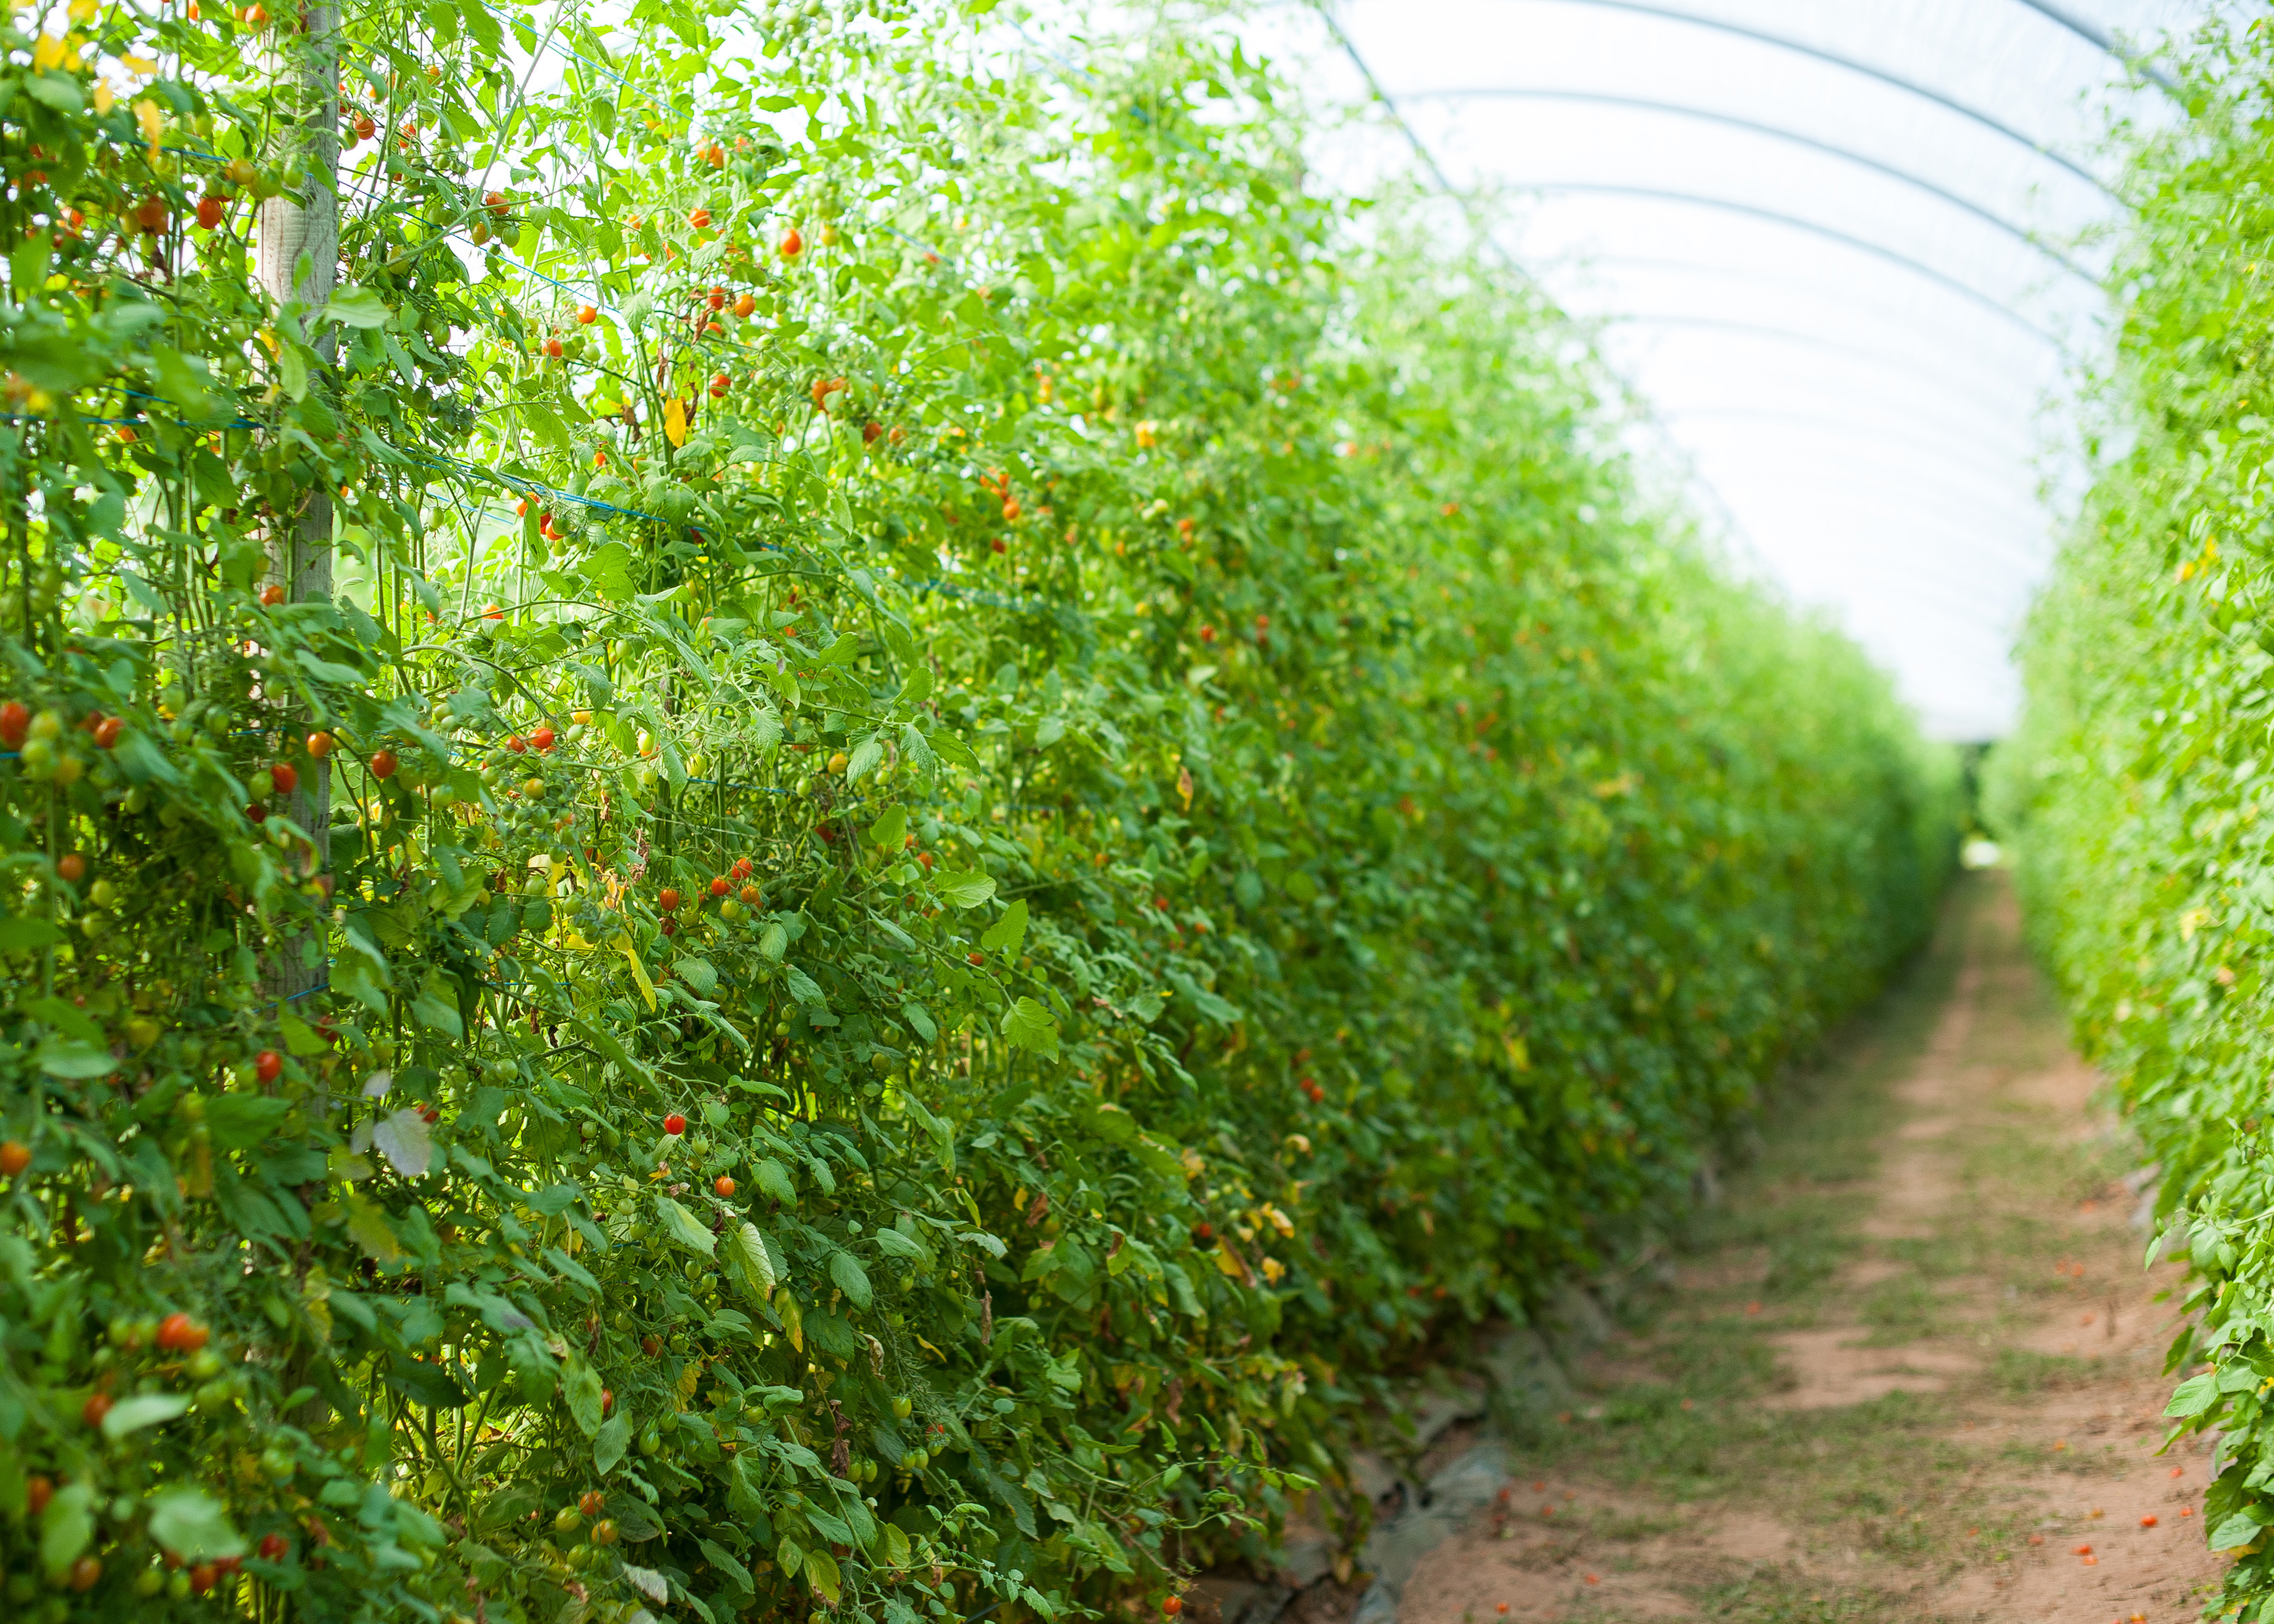 Country Magic Grape Tomatoes growing in Hayrgove tunnels